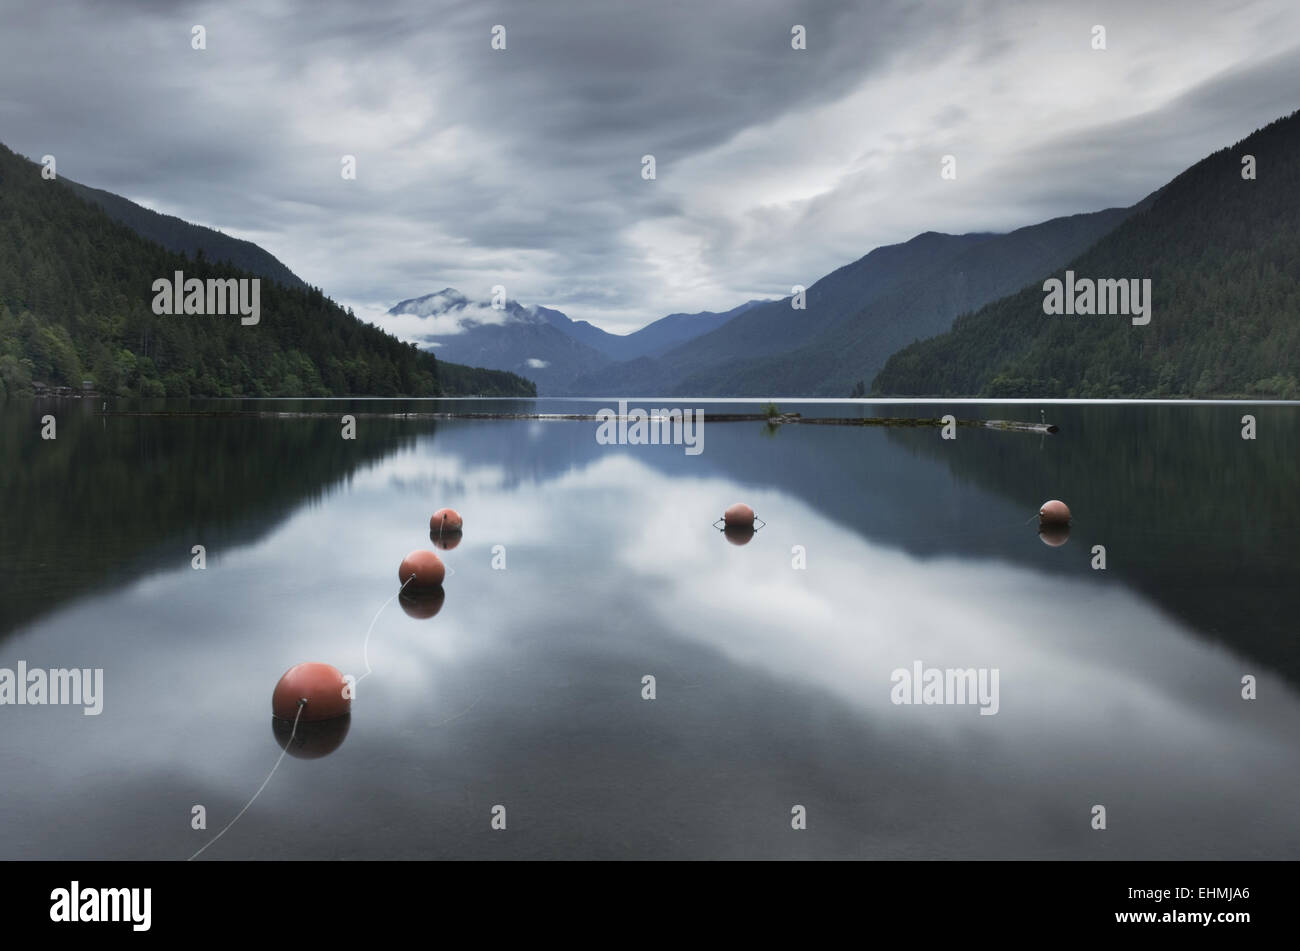 Buoys floating in still remote lake under clouds - Stock Image